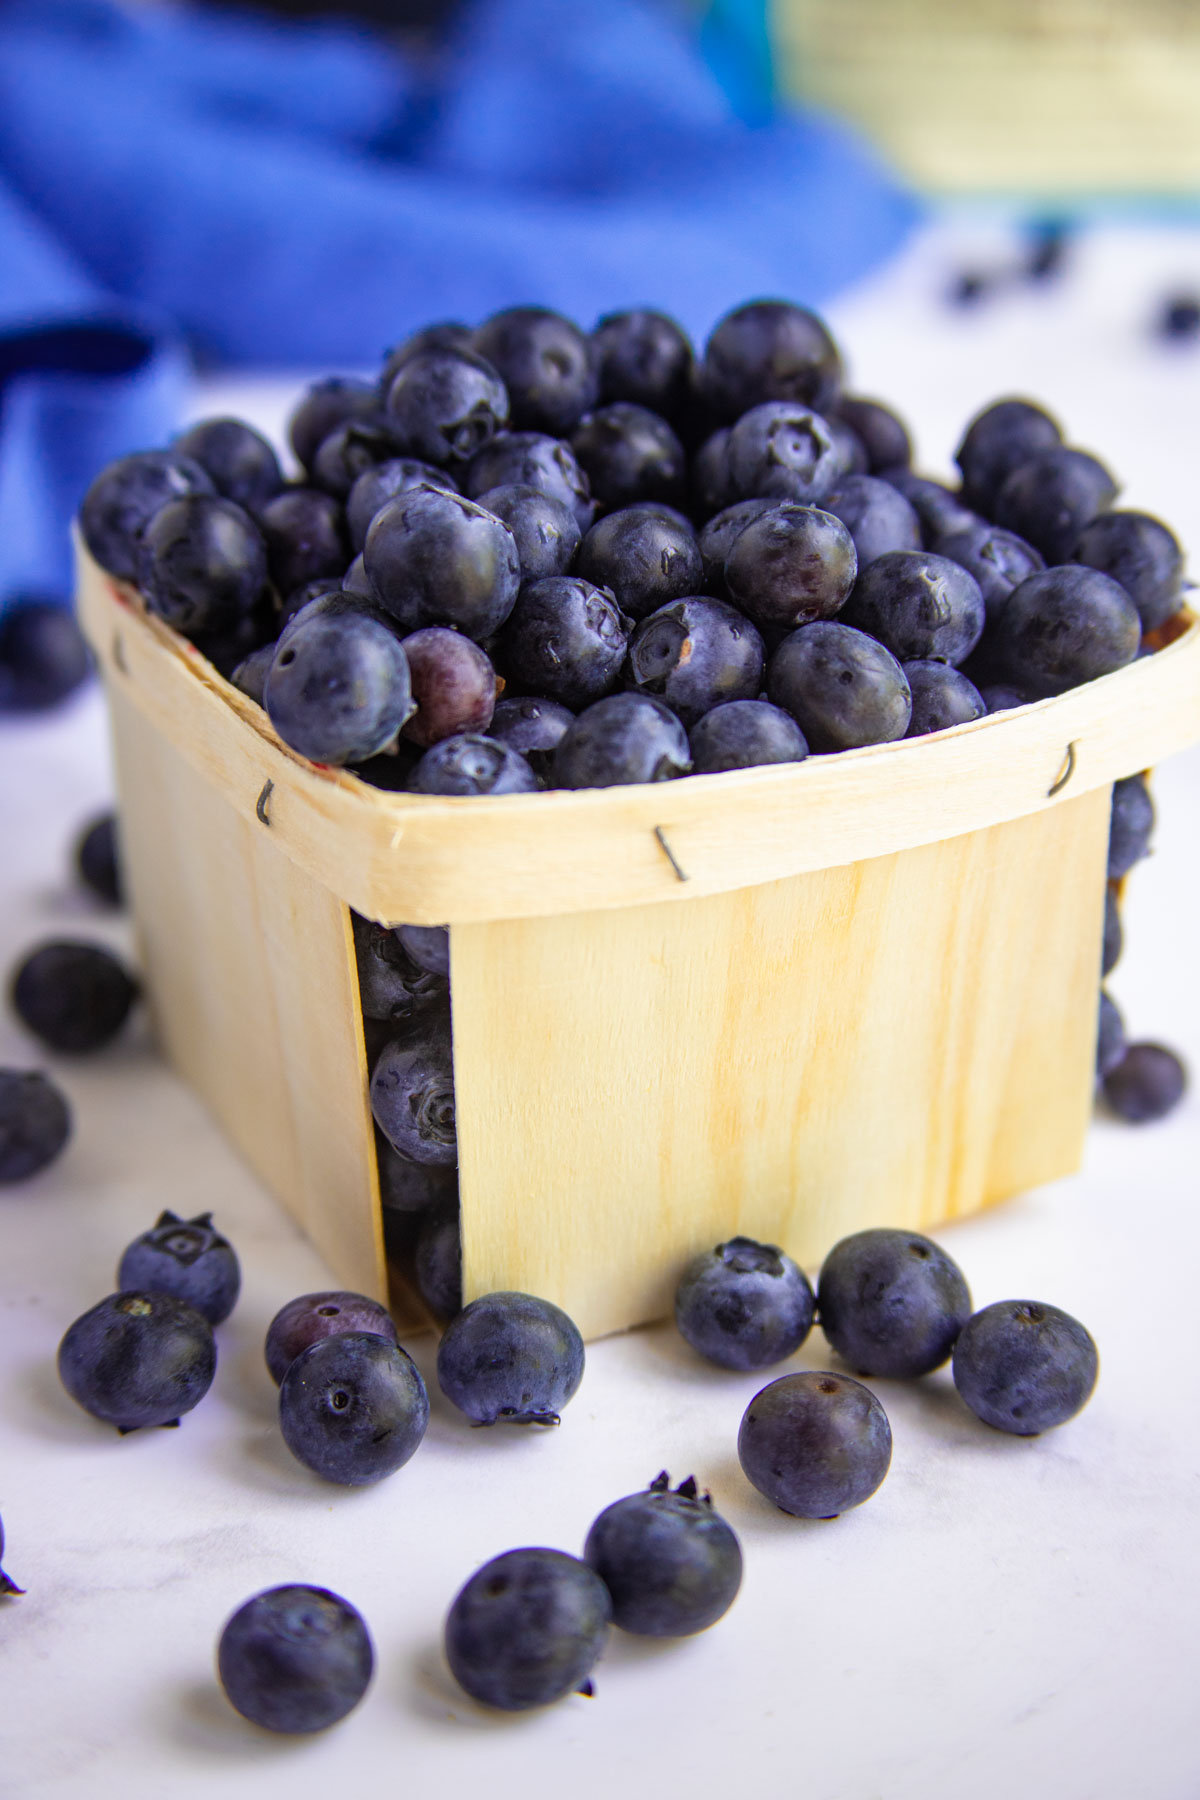 Fresh Blueberries in a wooden container